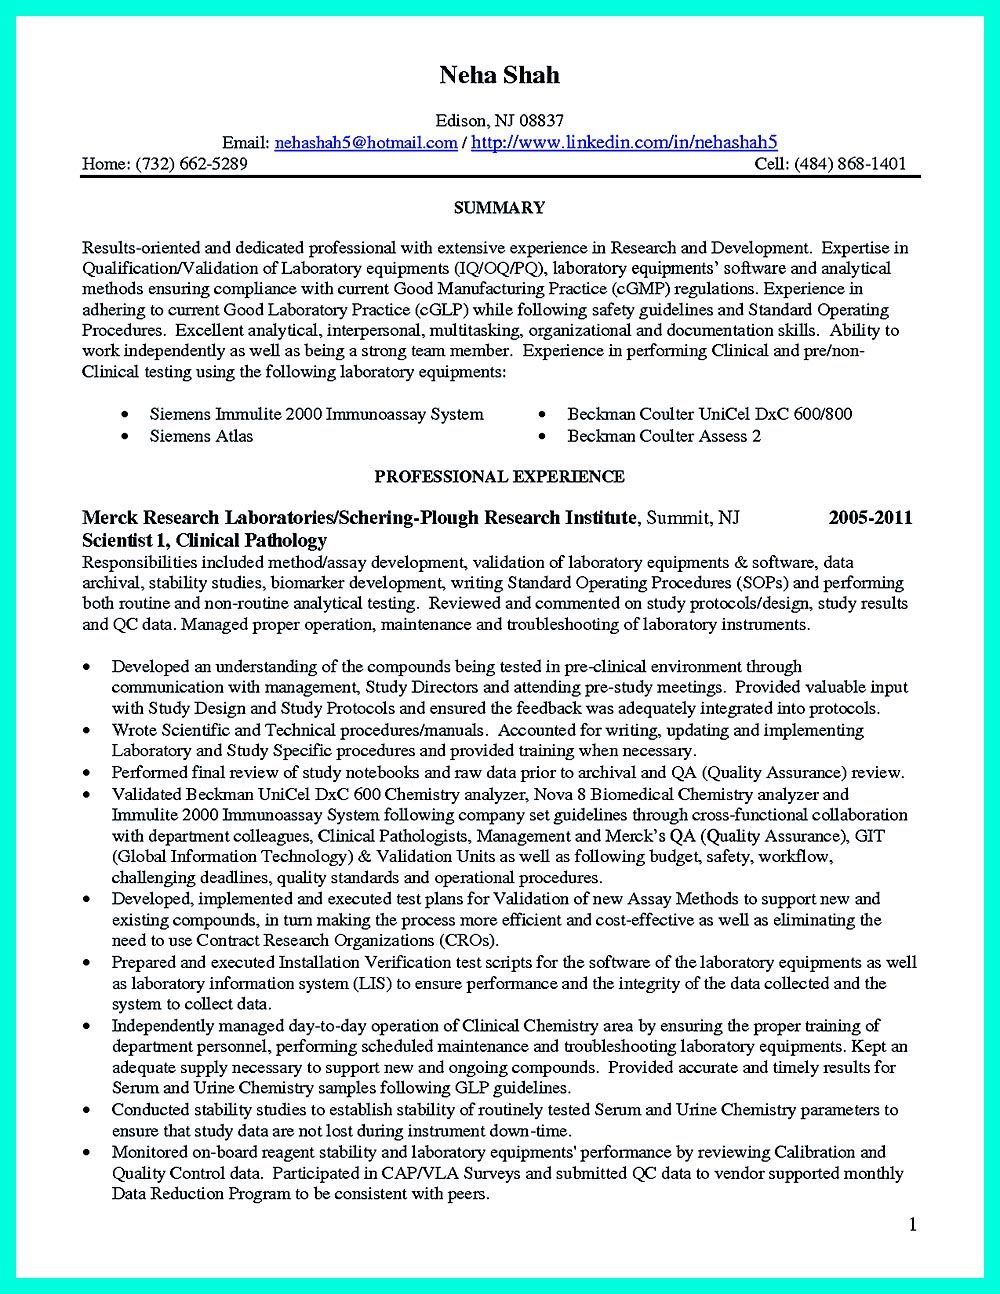 Clinical Research Coordinator Resume Objectives That Are Effective Resume Objective Resume Objective Statement Examples Resume Objective Statement